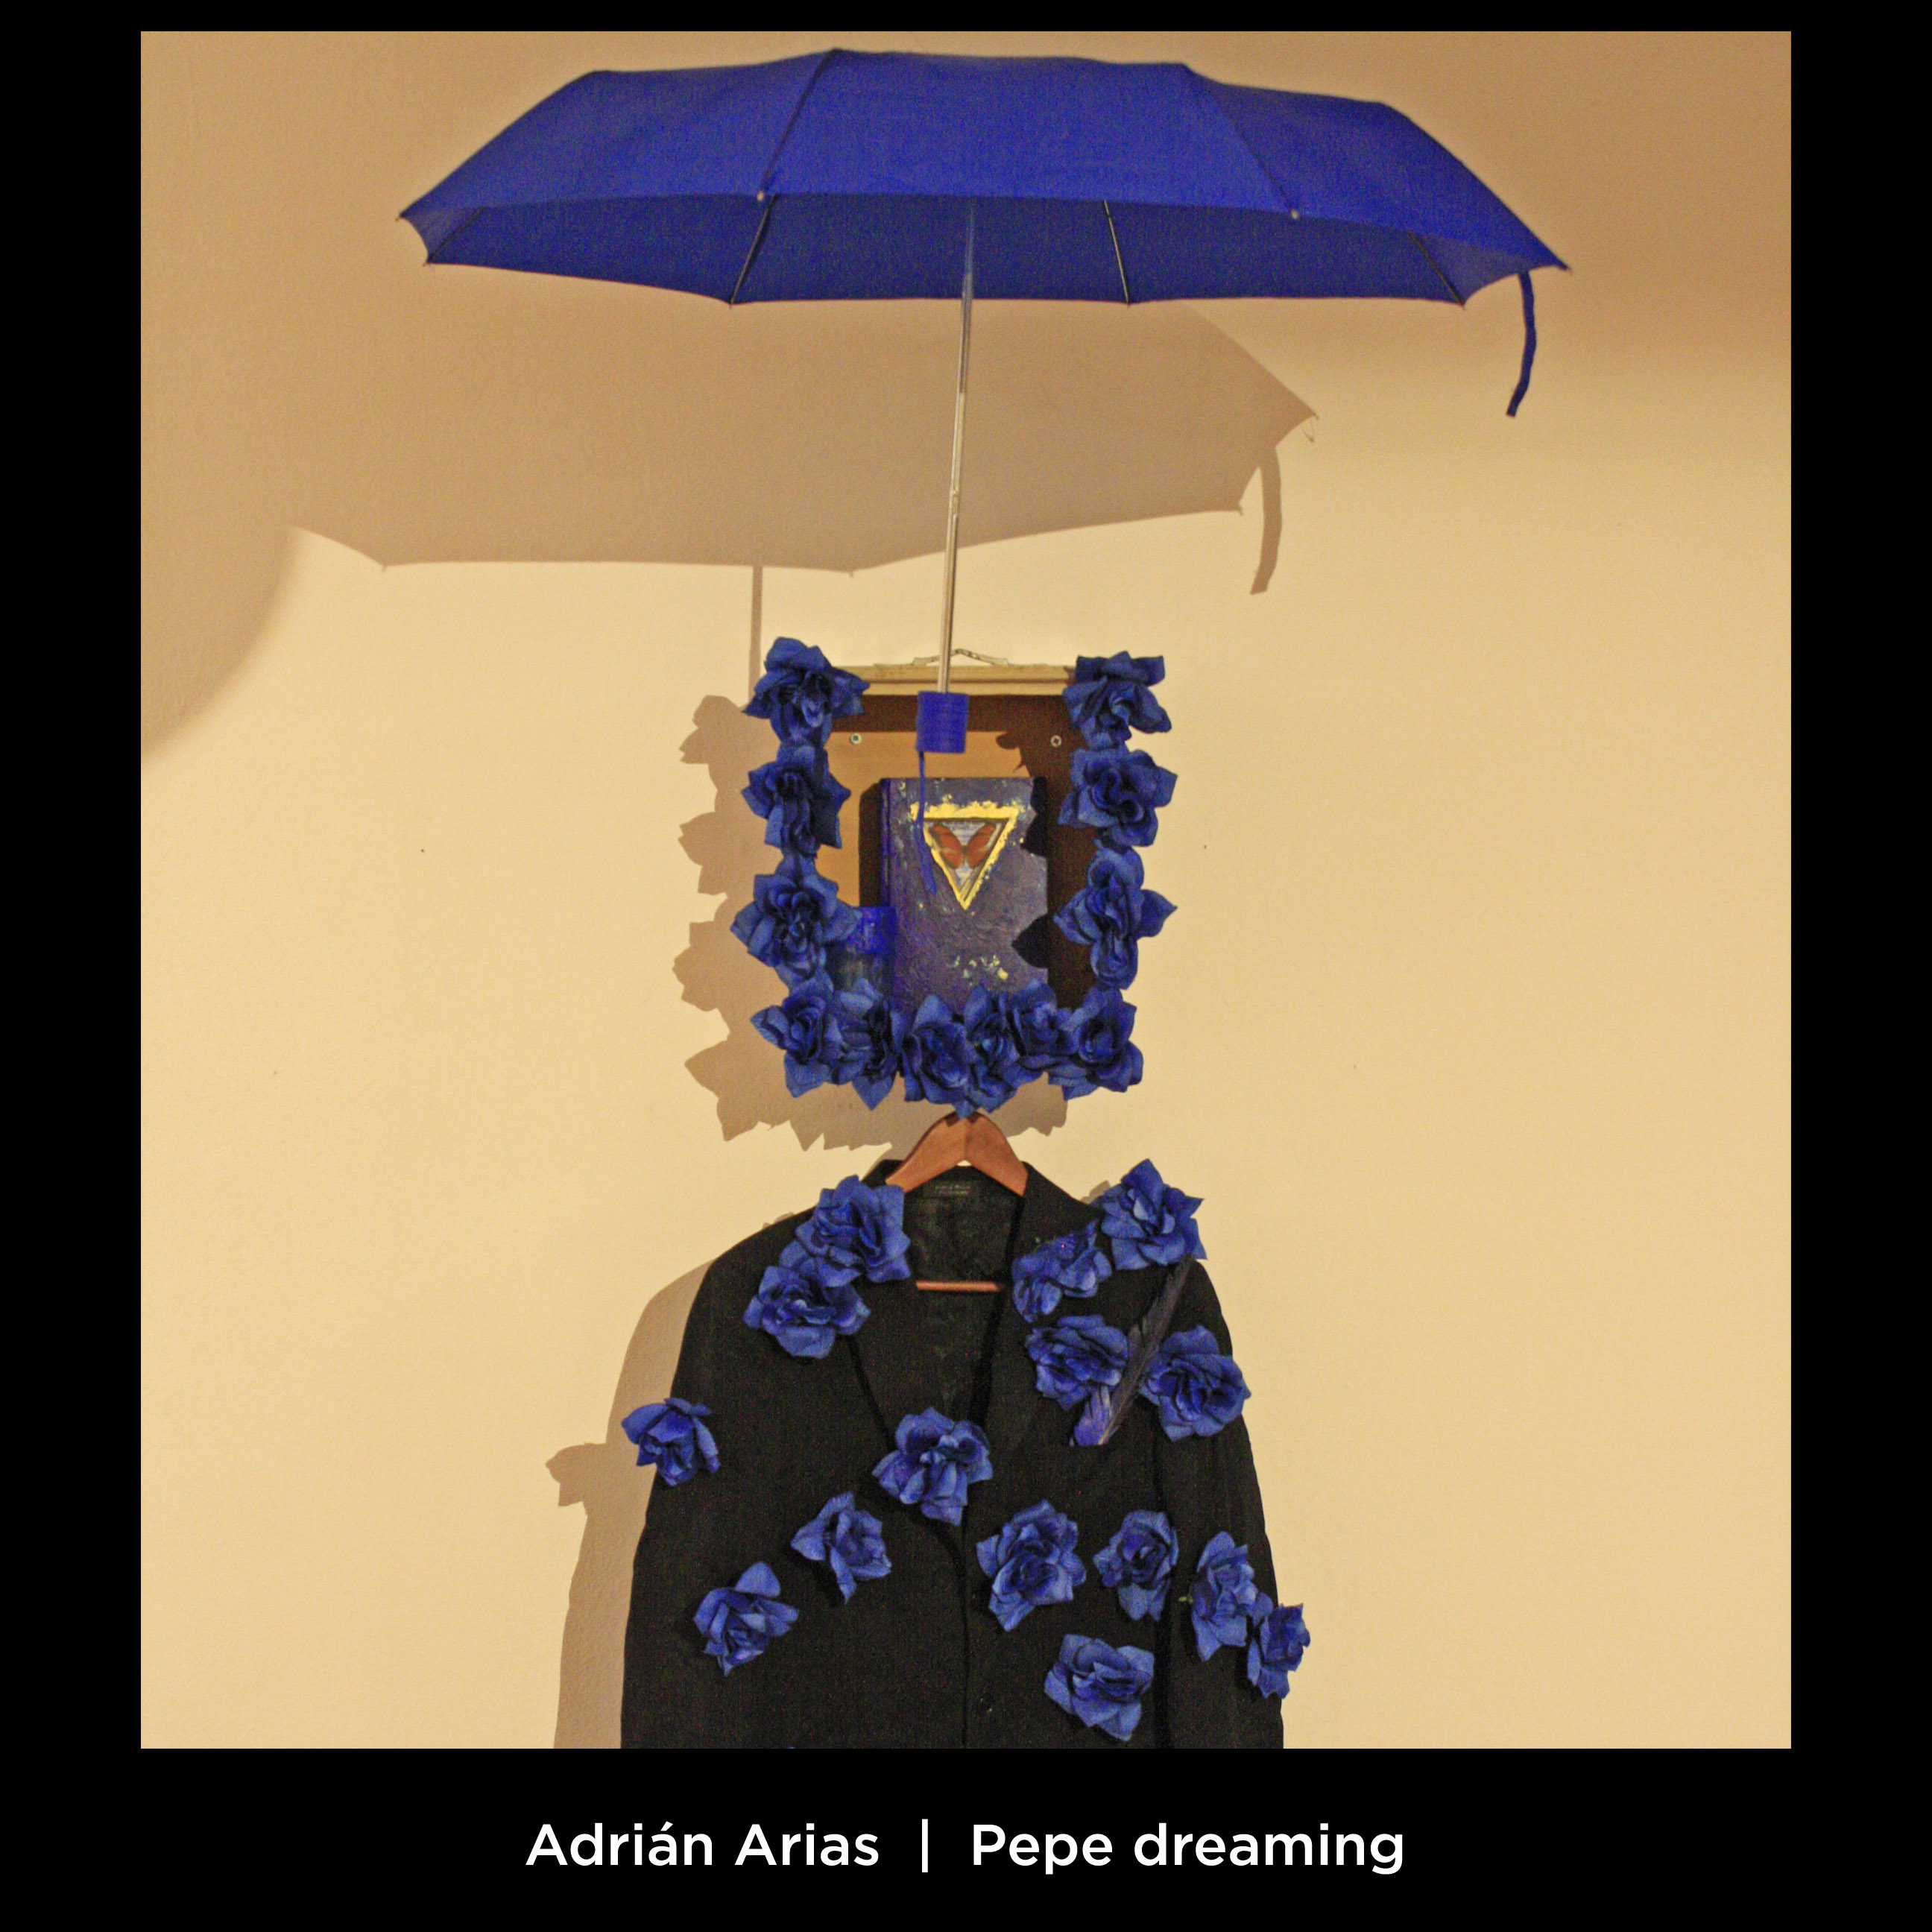 Adrián Arias: Pepe dreaming. Altar-installation honoring the memory of Argentinian visual artist-provocateur Pepe Ozan. One of the most influencial artists in the installations at Burning Man in the past two decades.